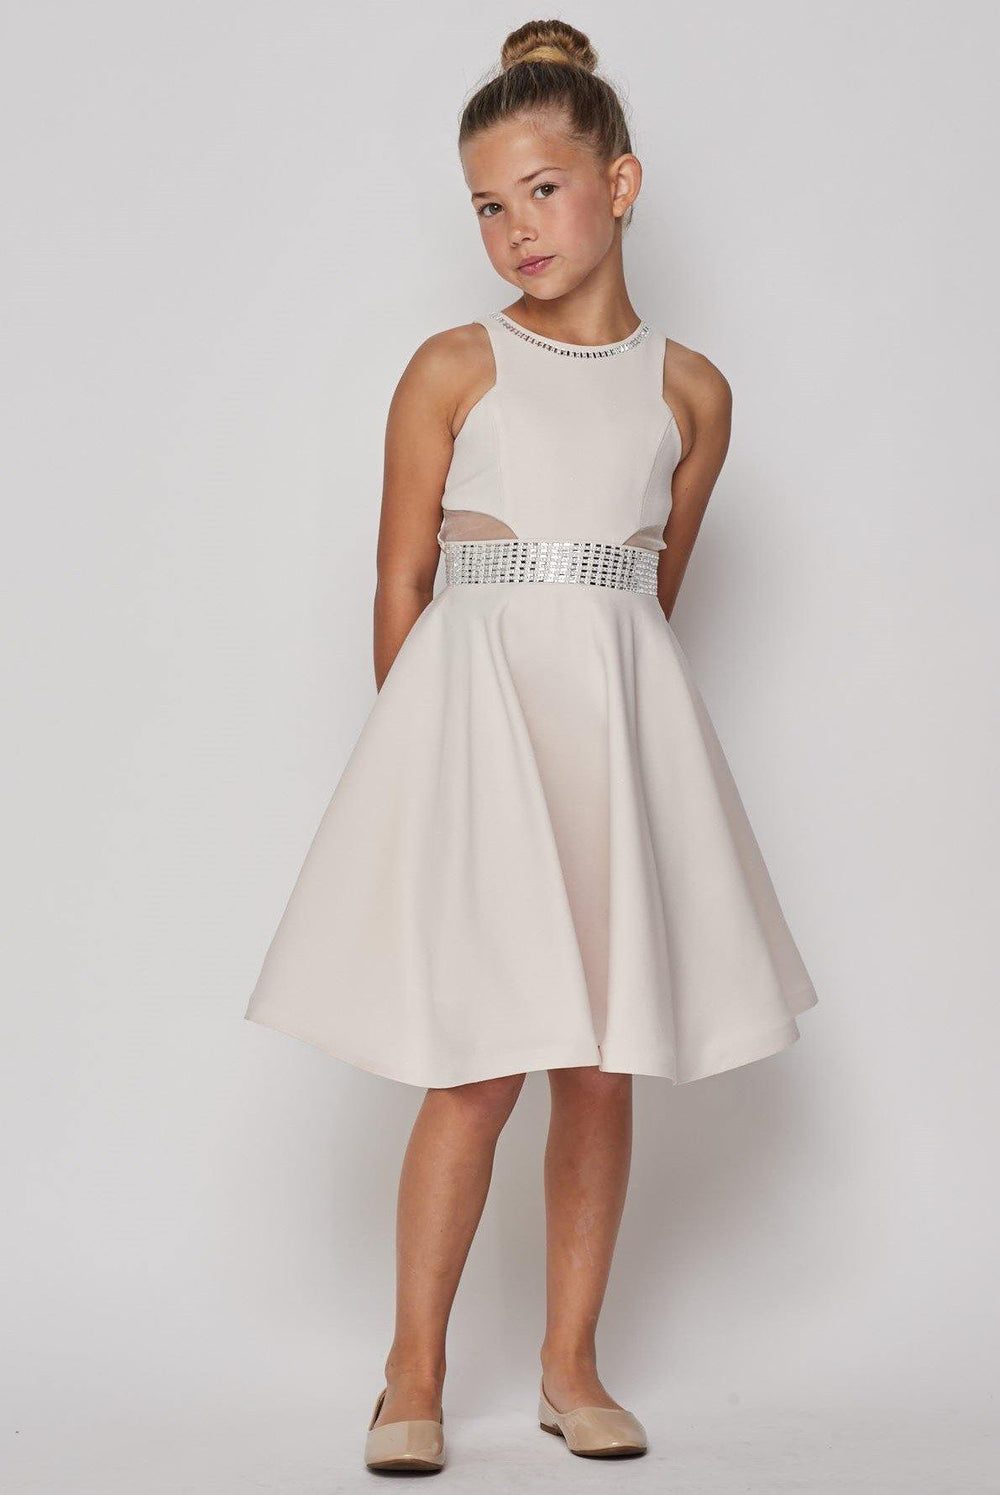 Short Sparkle Flower Girl Dress - The Dress Outlet Cream